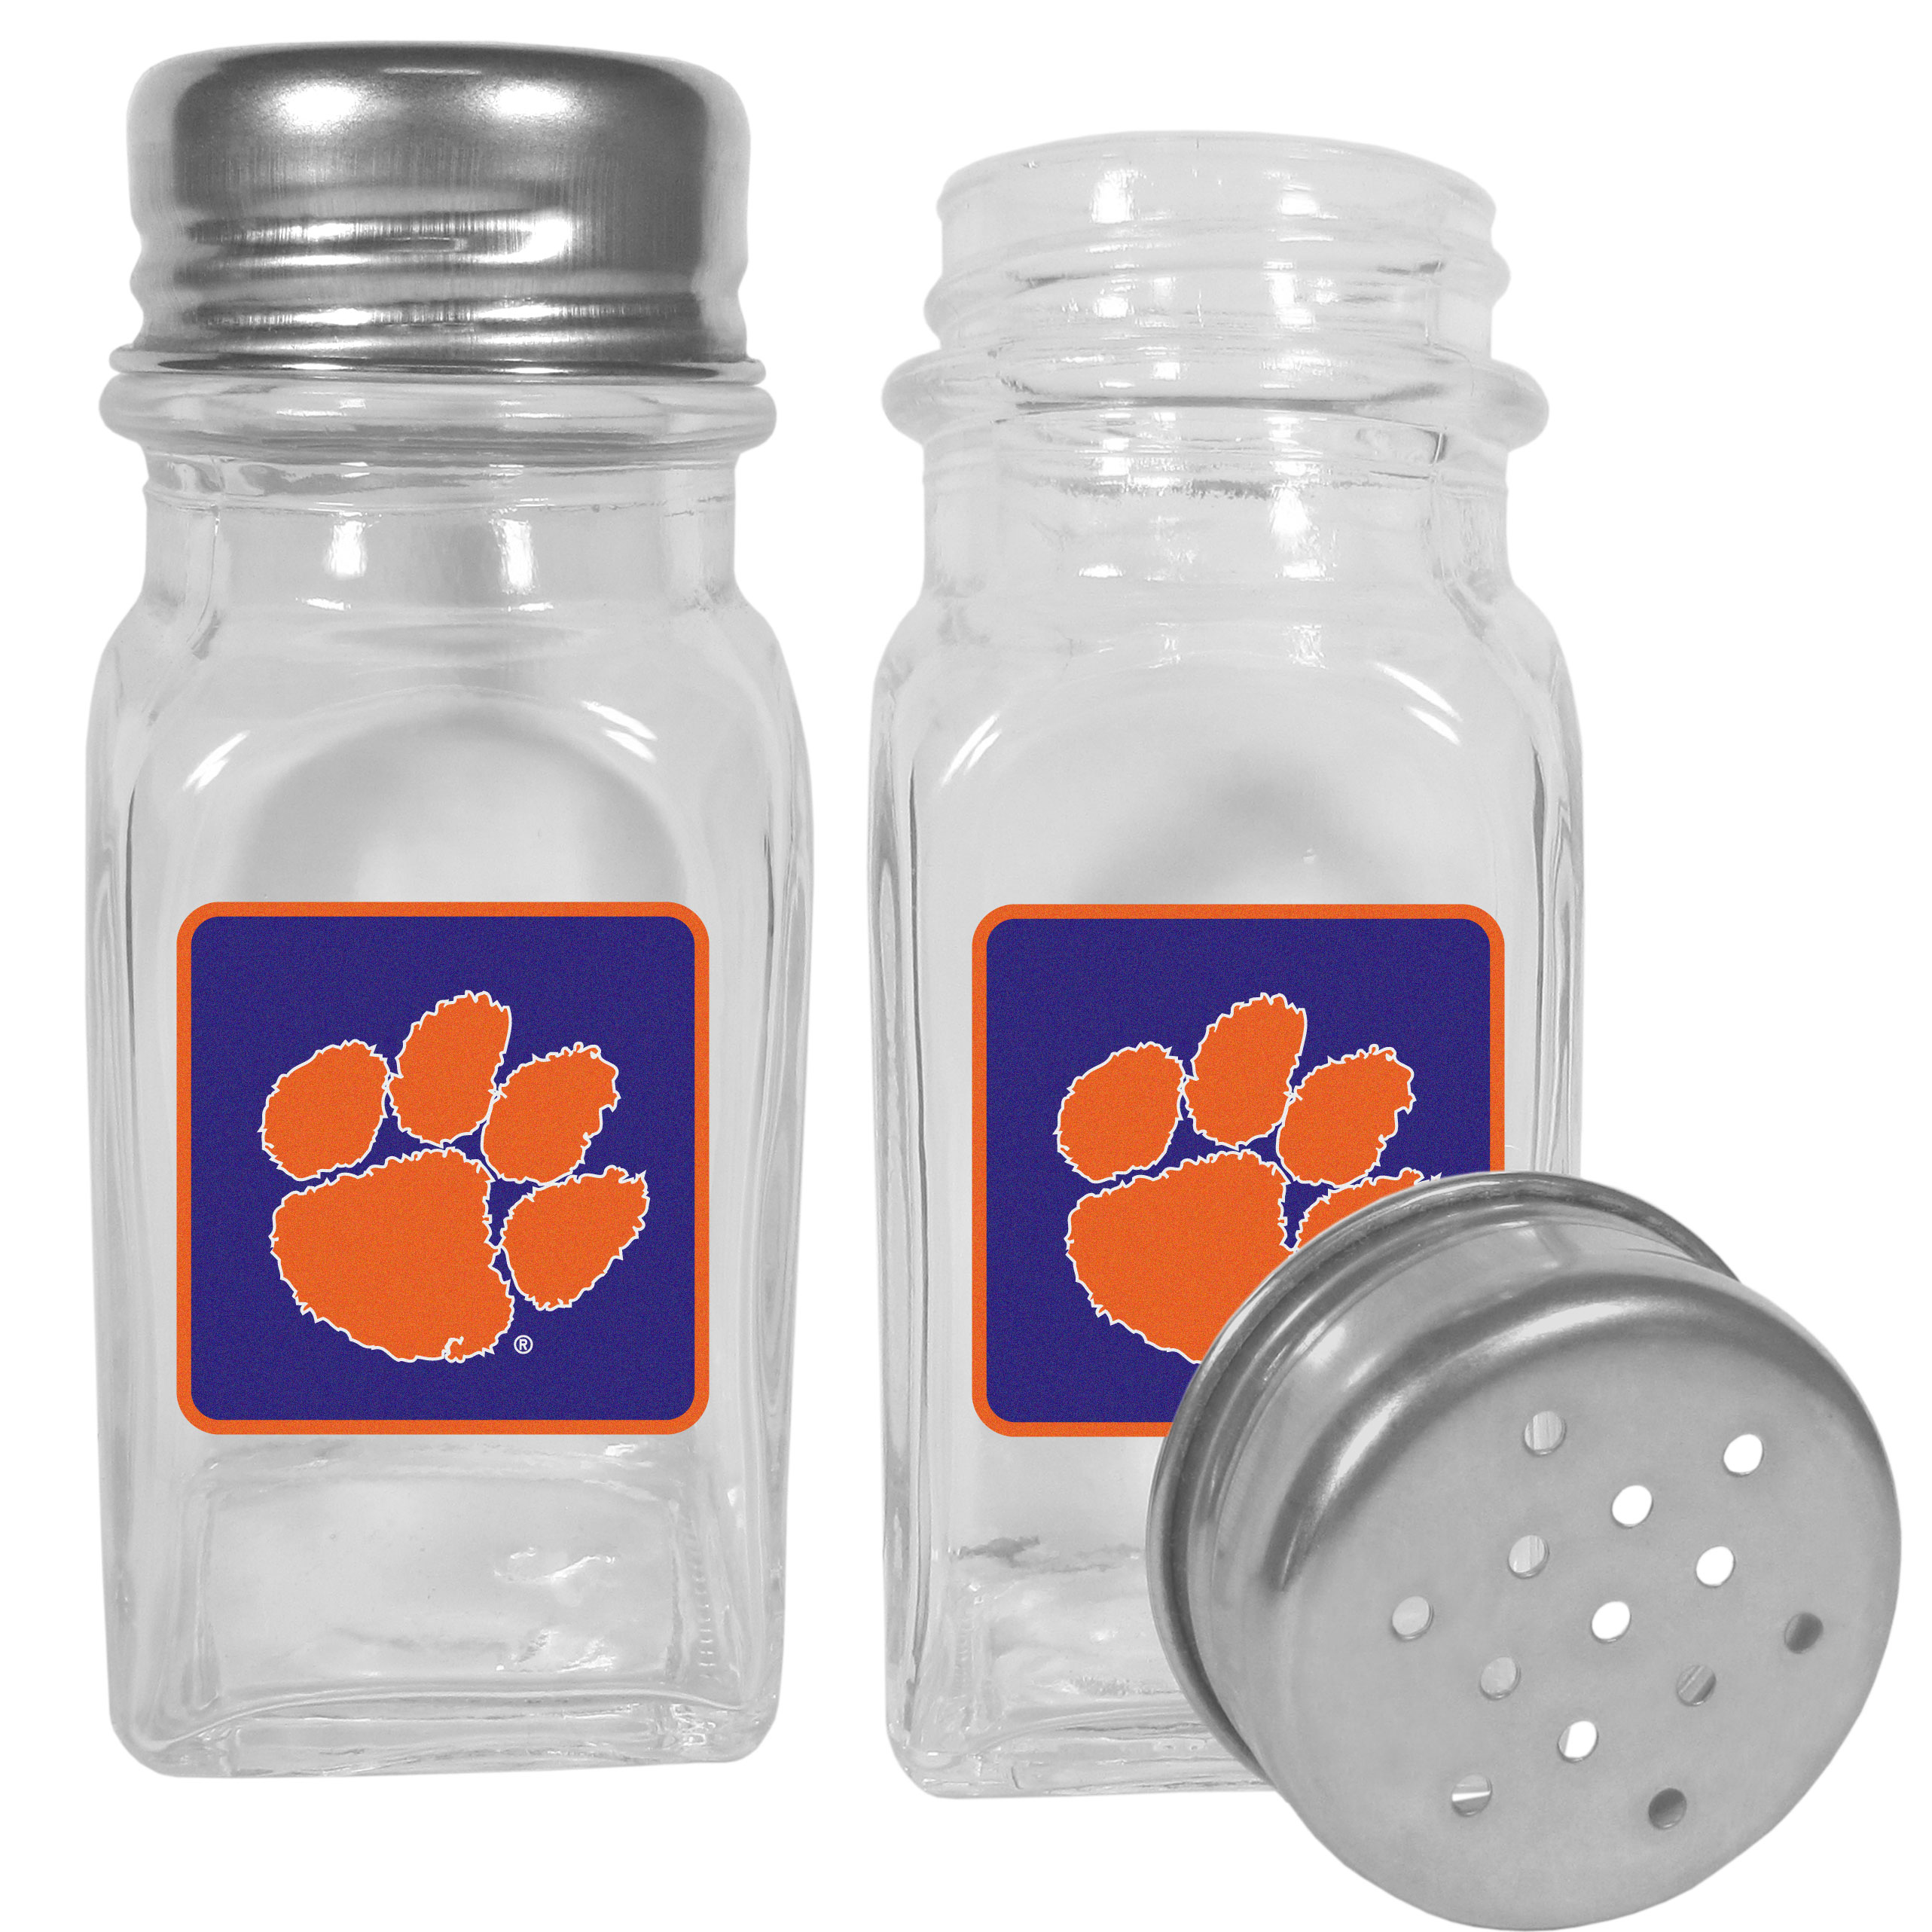 Clemson Tigers Graphics Salt and Pepper Shaker - No tailgate party is complete without your Clemson Tigers salt & pepper shakers featuring bright team logos. The diner replica salt and pepper shakers are glass with screw top lids. These team shakers are a great grill accessory whether you are barbecuing on the patio, picnicing or having a game day party.